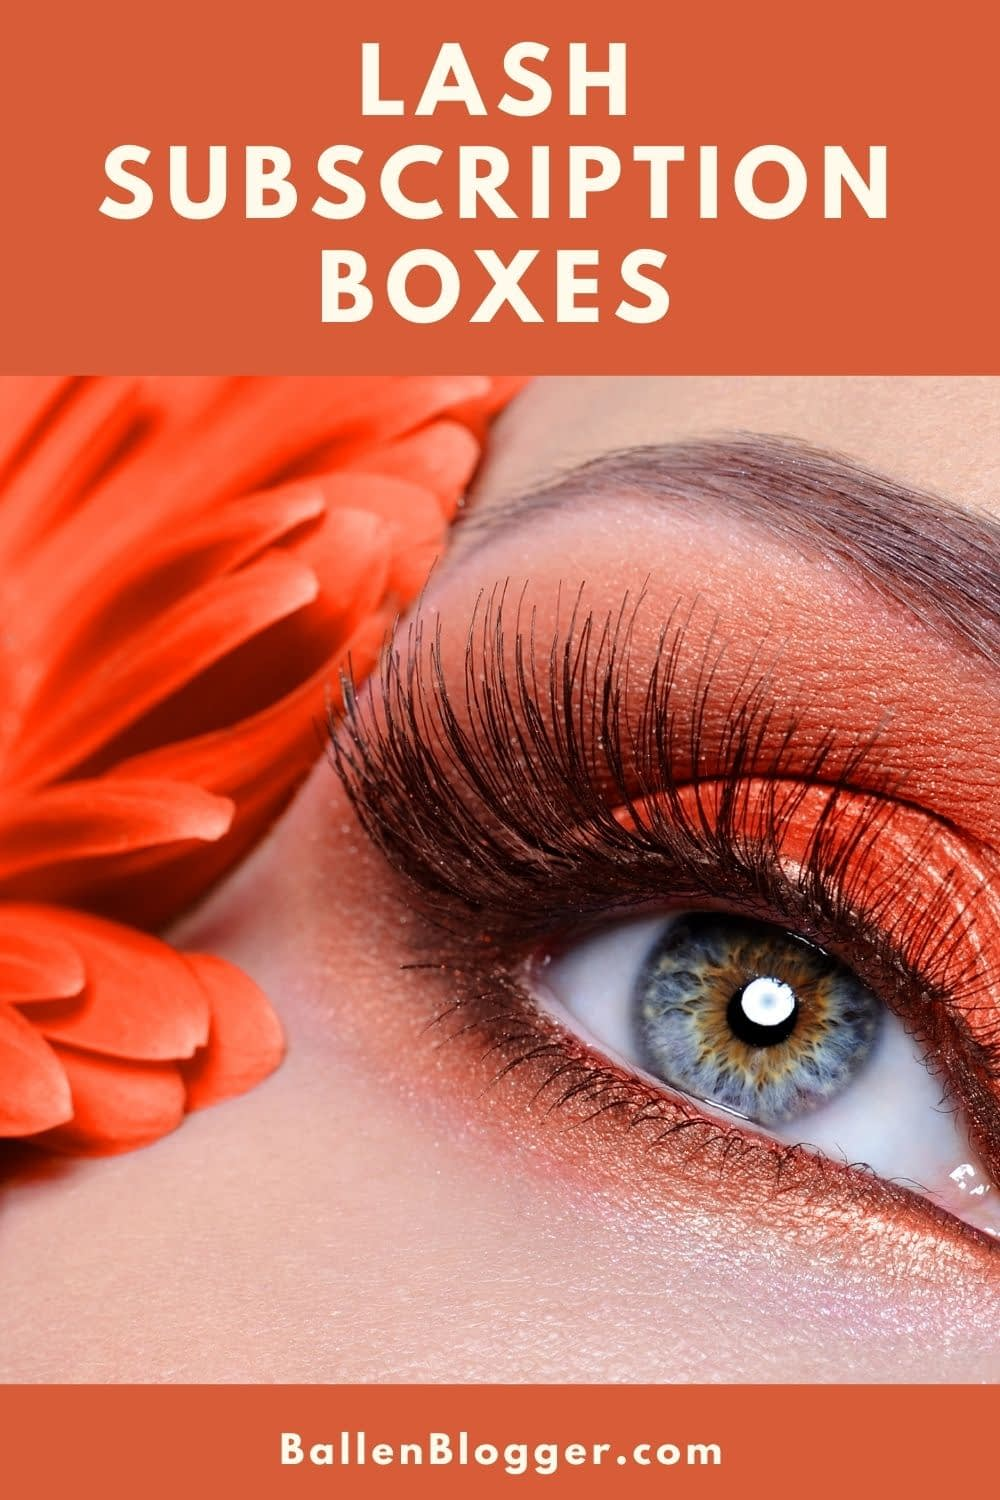 Get your lashes delivered to your front doorstep. Each box comes in various sizes, prices, and delivery options. If you are as excited about magnetic lashes as I am, be sure to check out MoxieLash Magnetic Lashes!